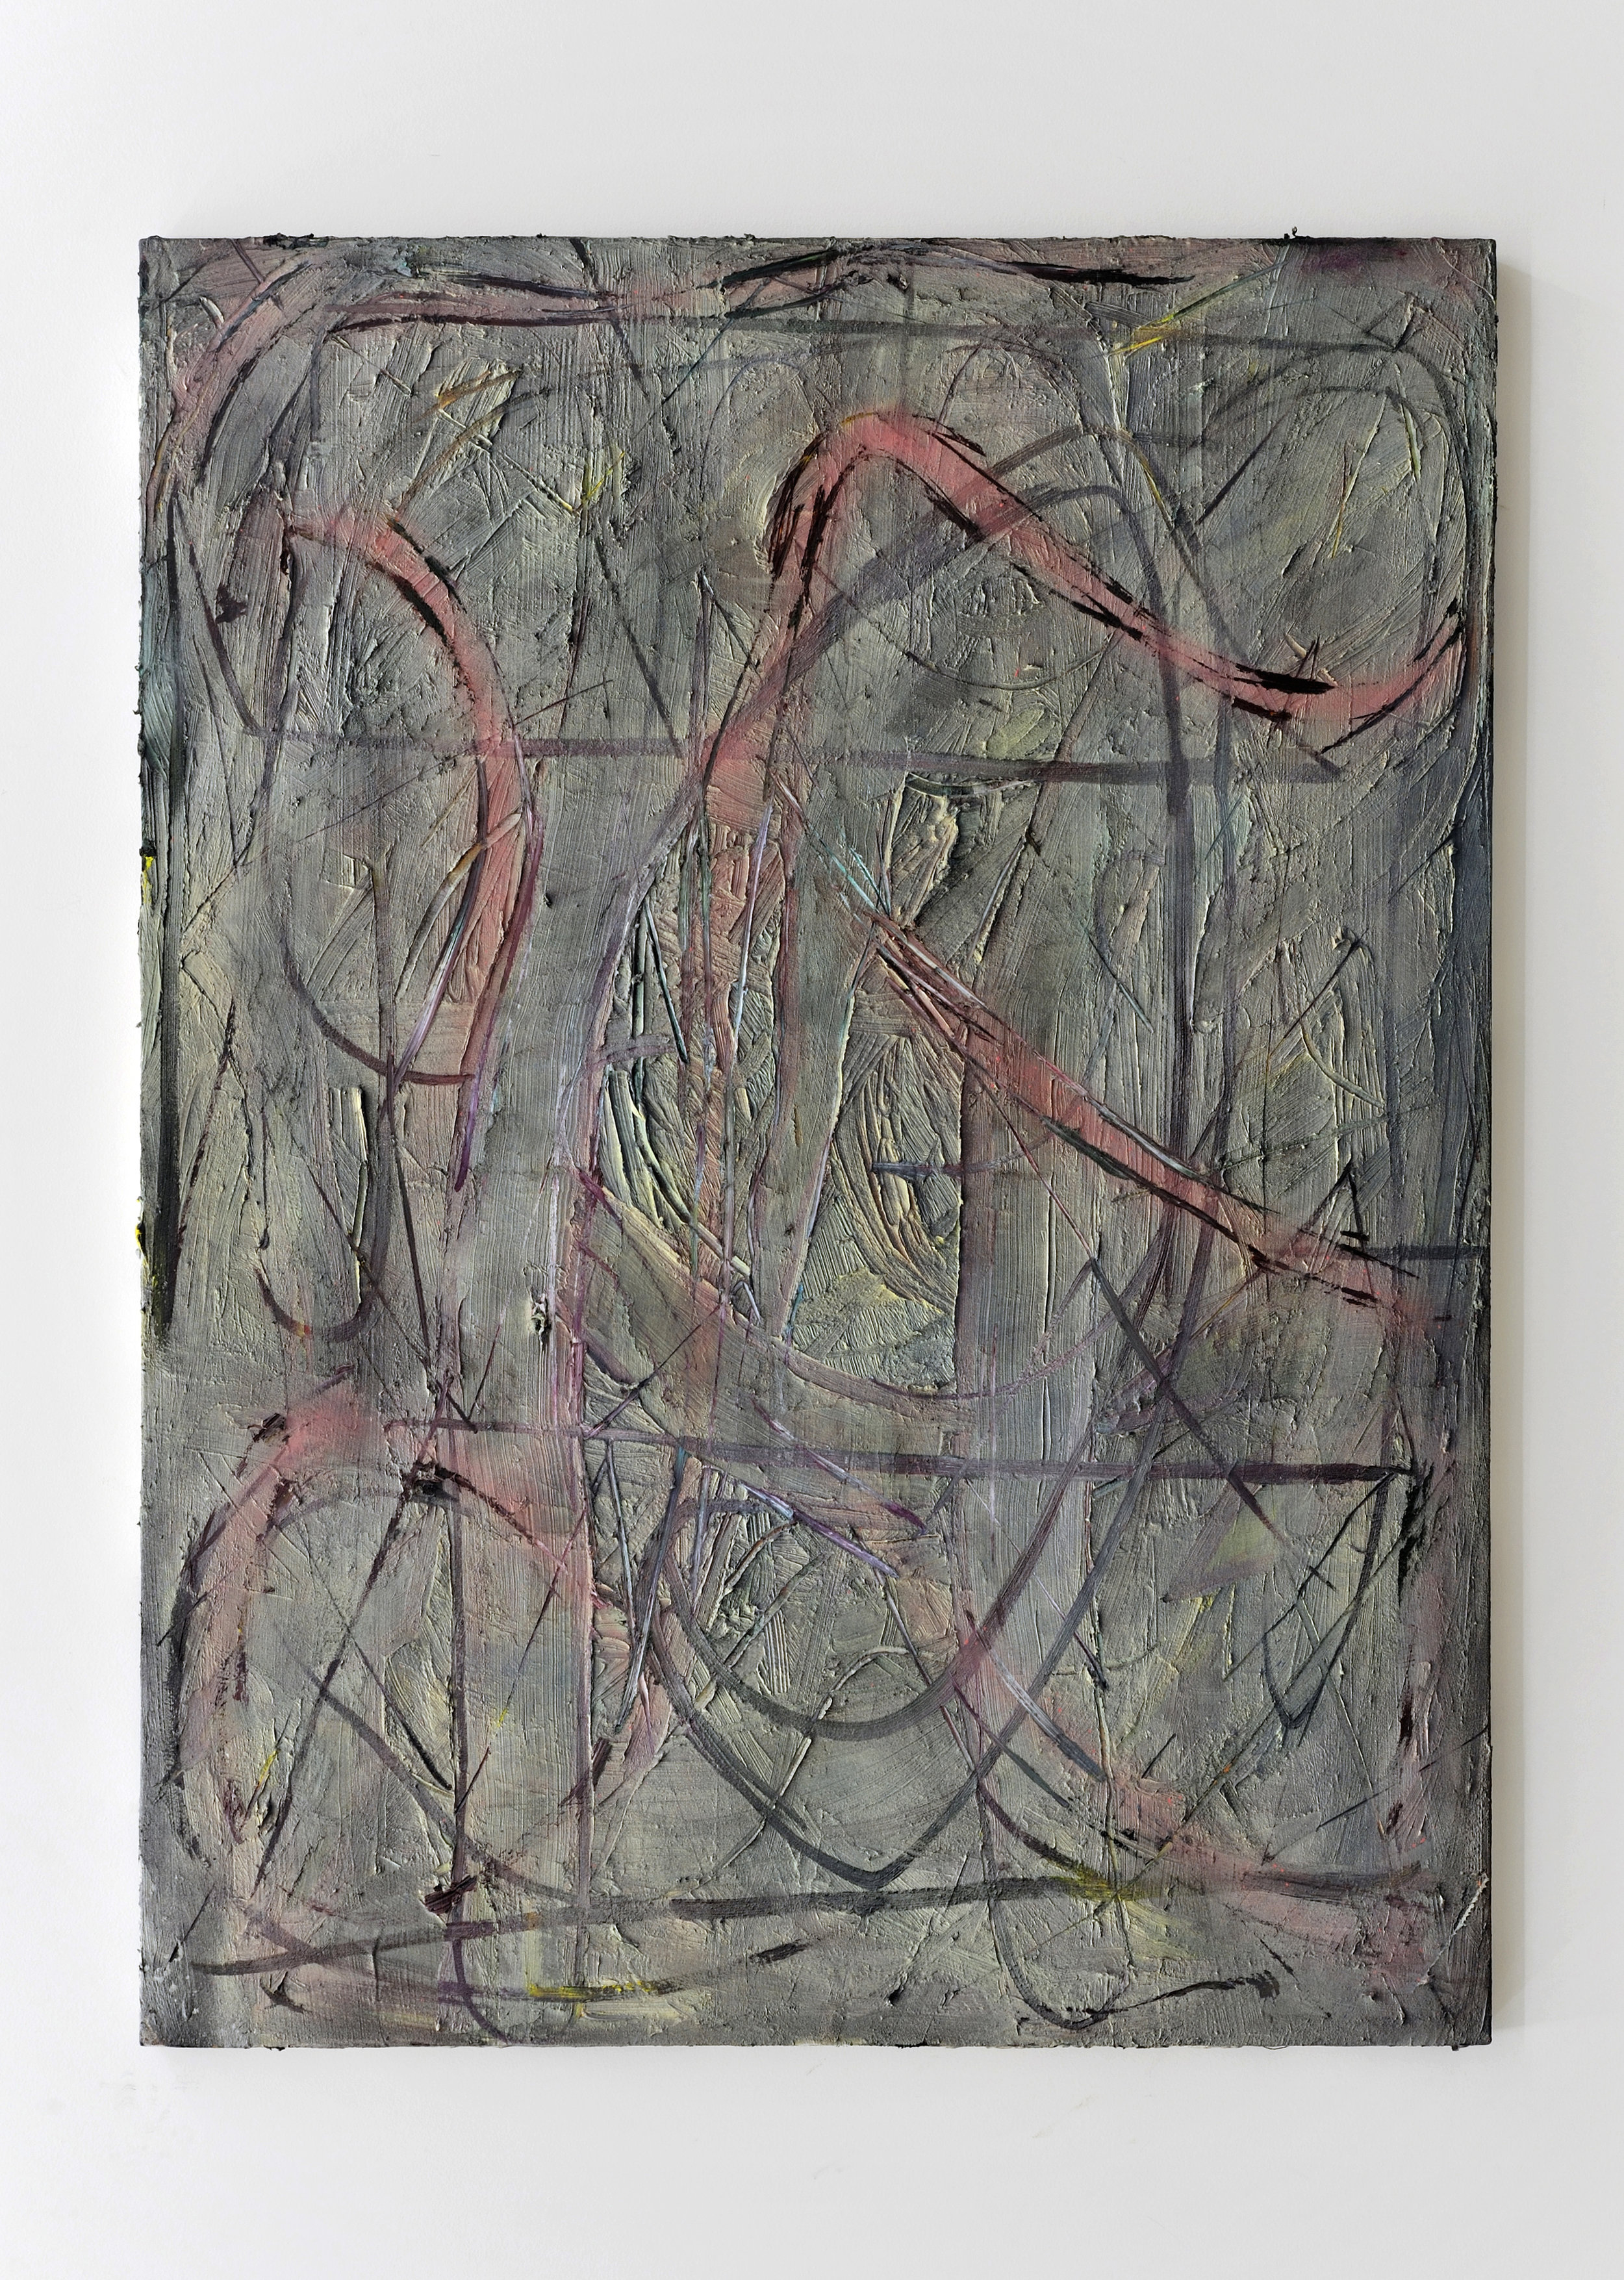 Pound, 2012 oil and spray paint on canvas 162 x 121 cm - 63 3/4 x 47 5/8 inches